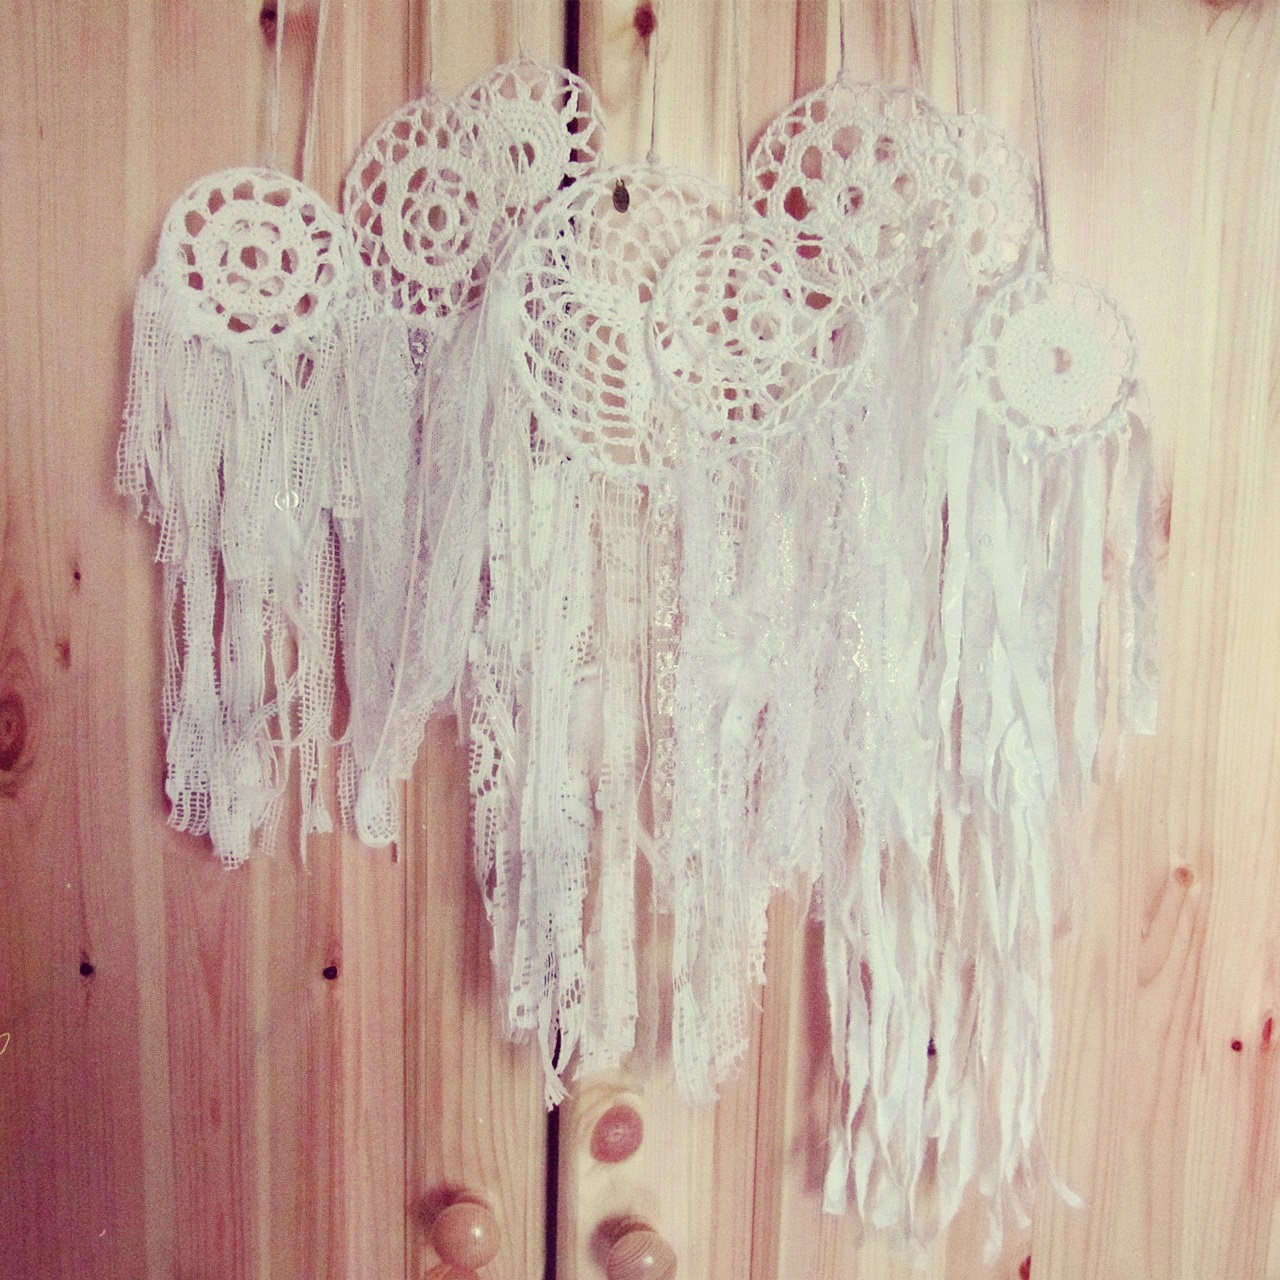 Dreamcatchers Wedding Favors for Guests - Multiple White Dream ...